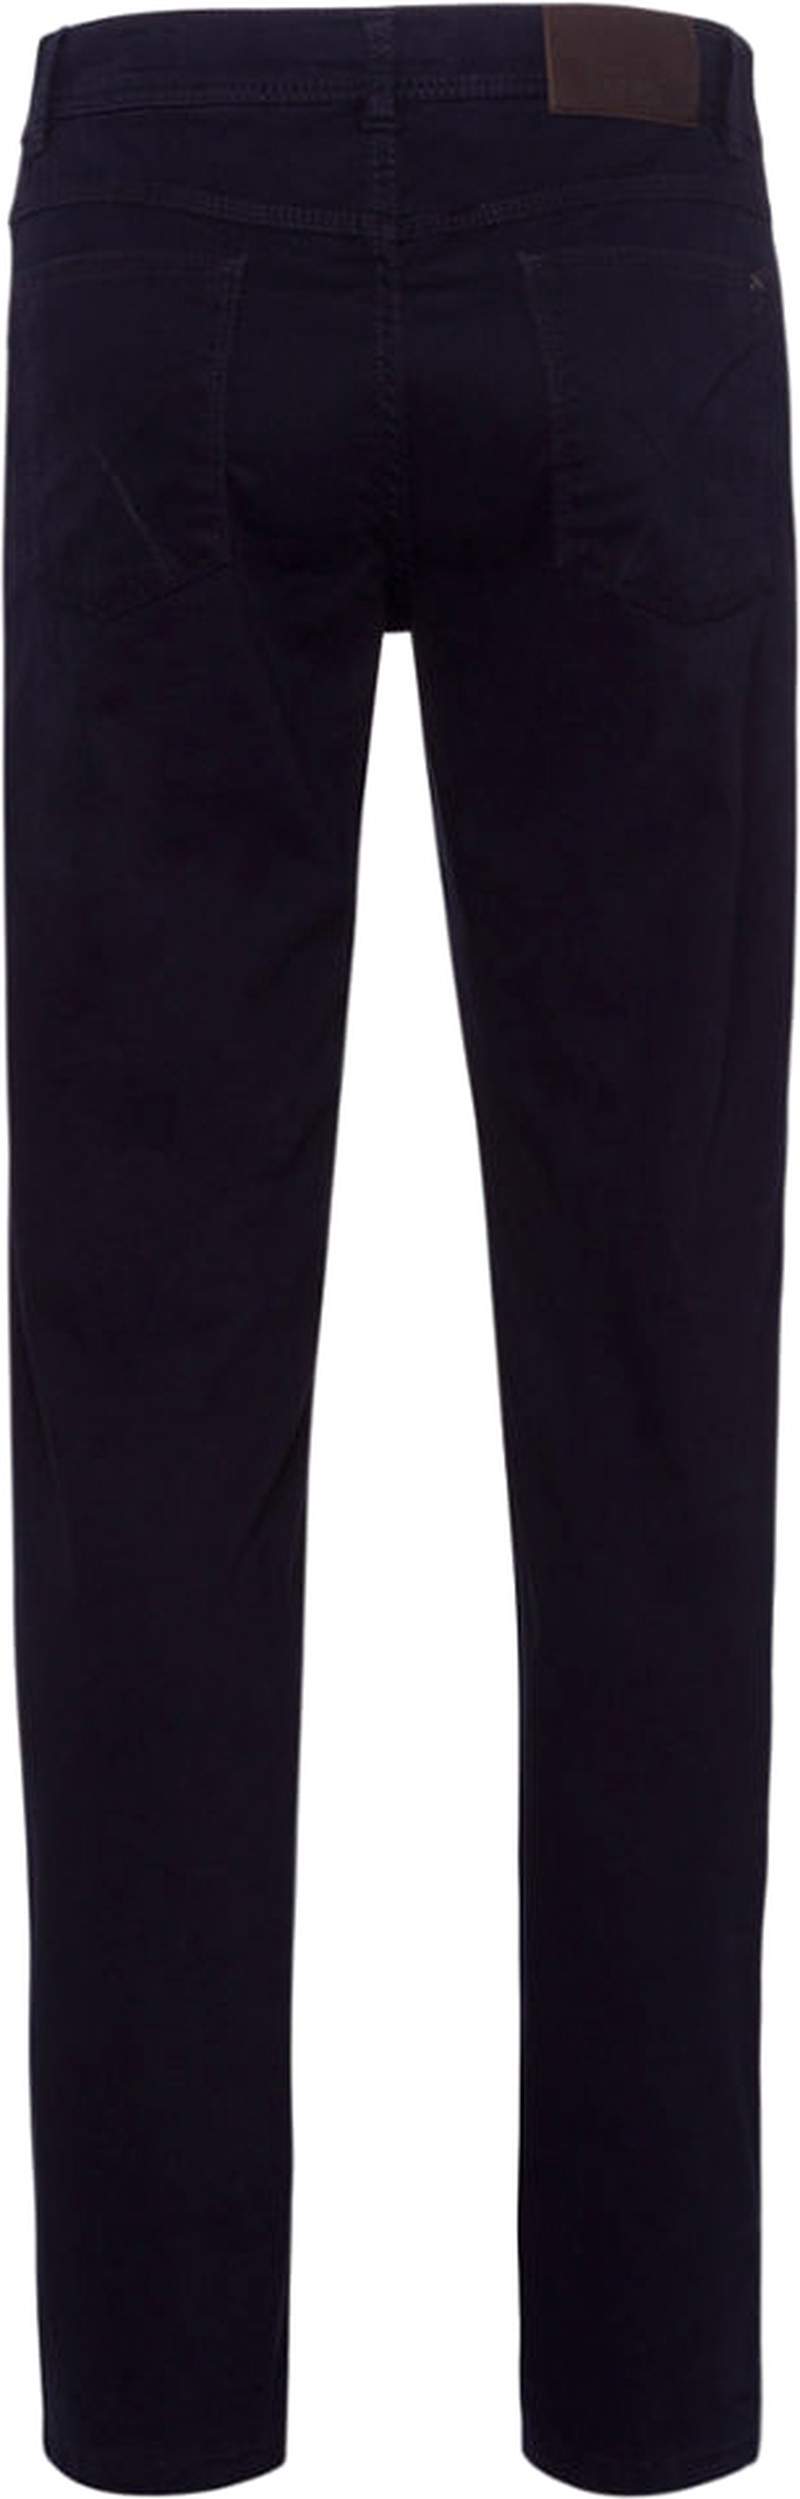 Brax Trousers Cooper Fancy Perma Blue photo 1